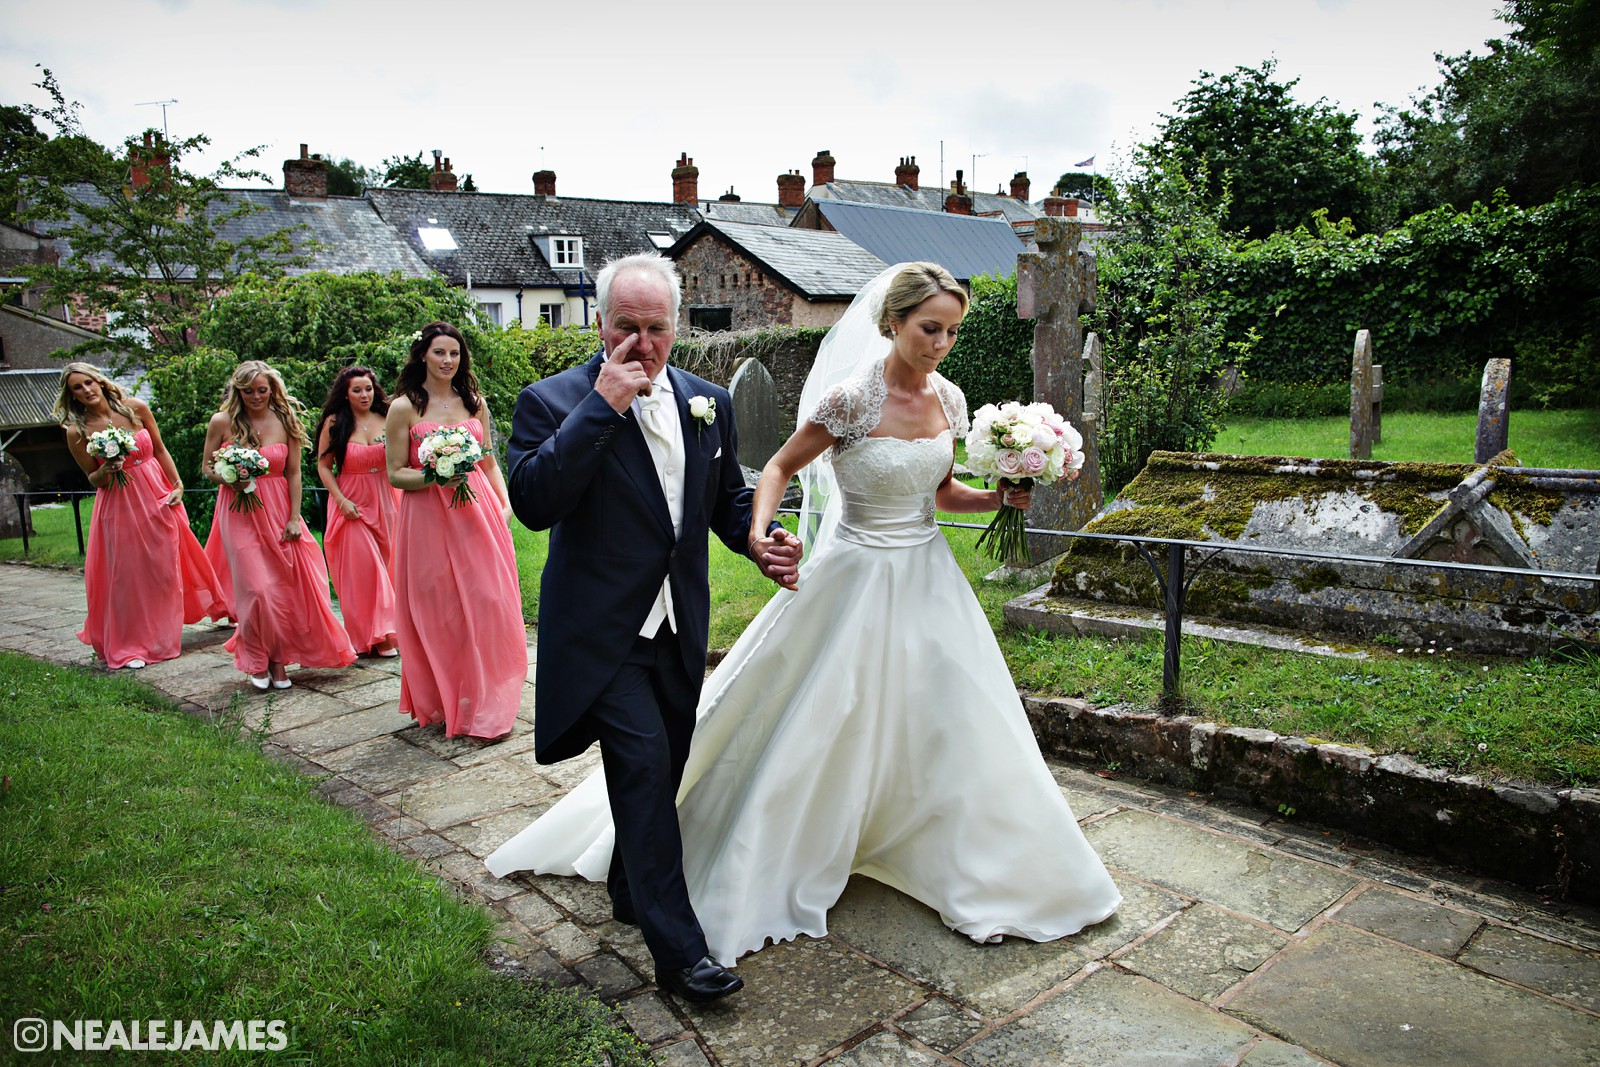 Colour photo of a bride arriving at church with her father